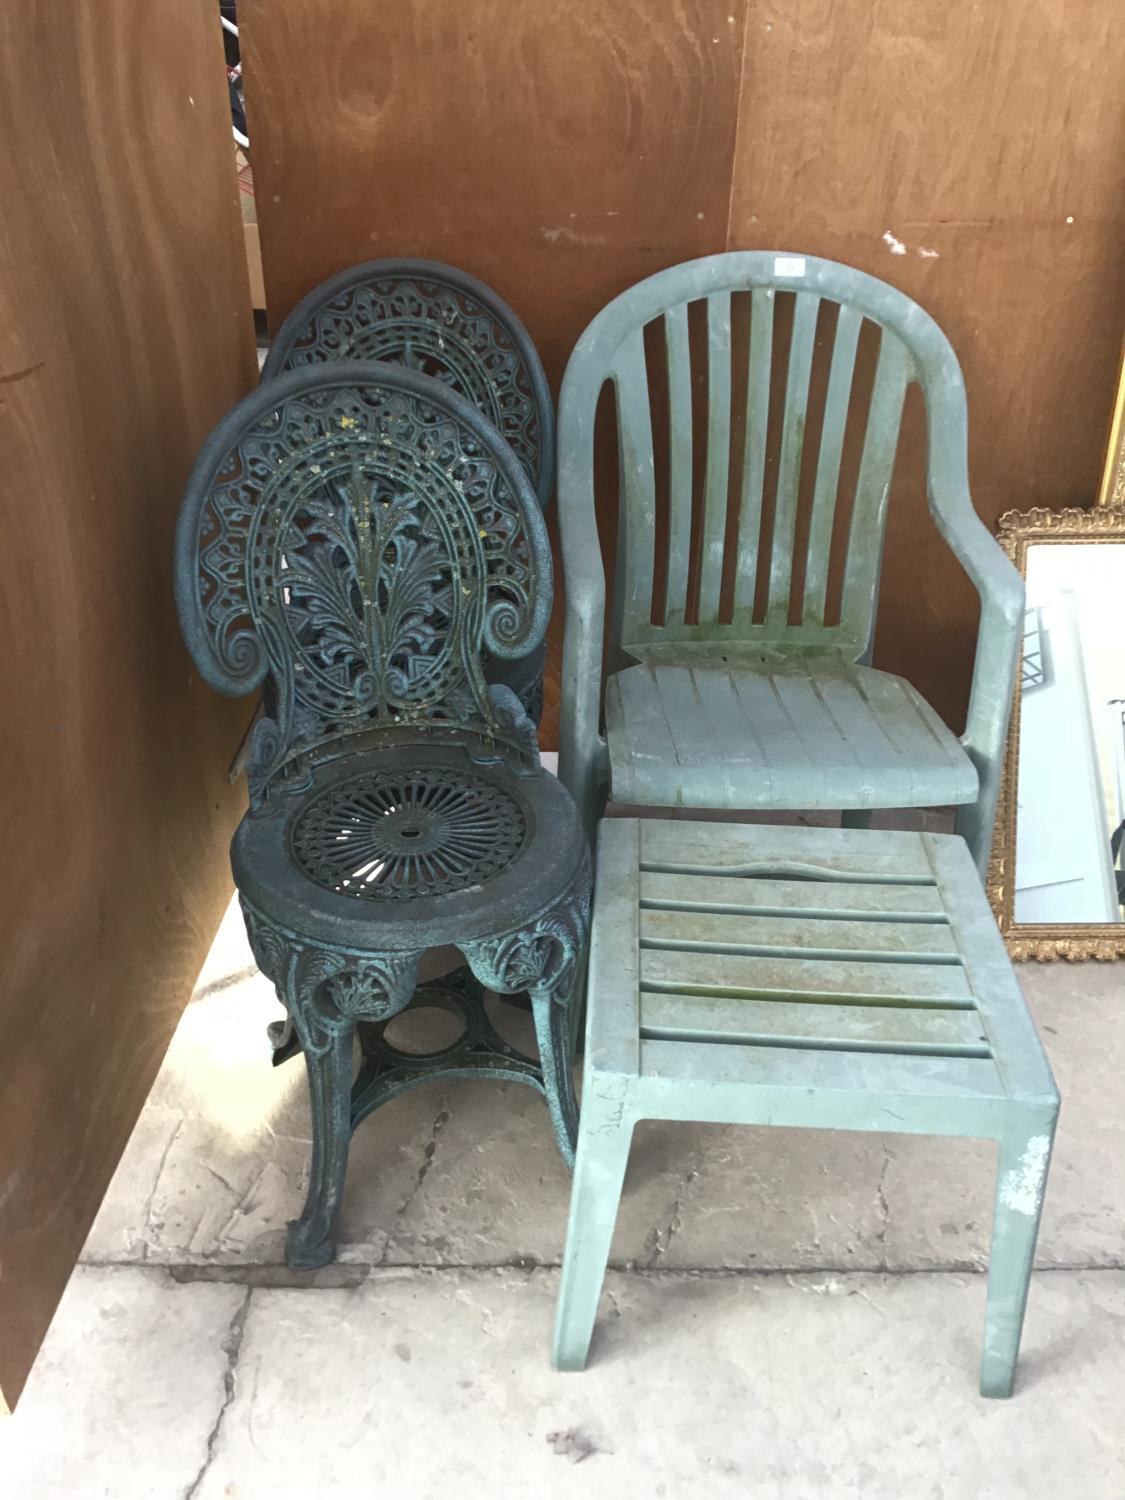 THREE PLASTIC GARDEN CHAIRS AND A TABLE.